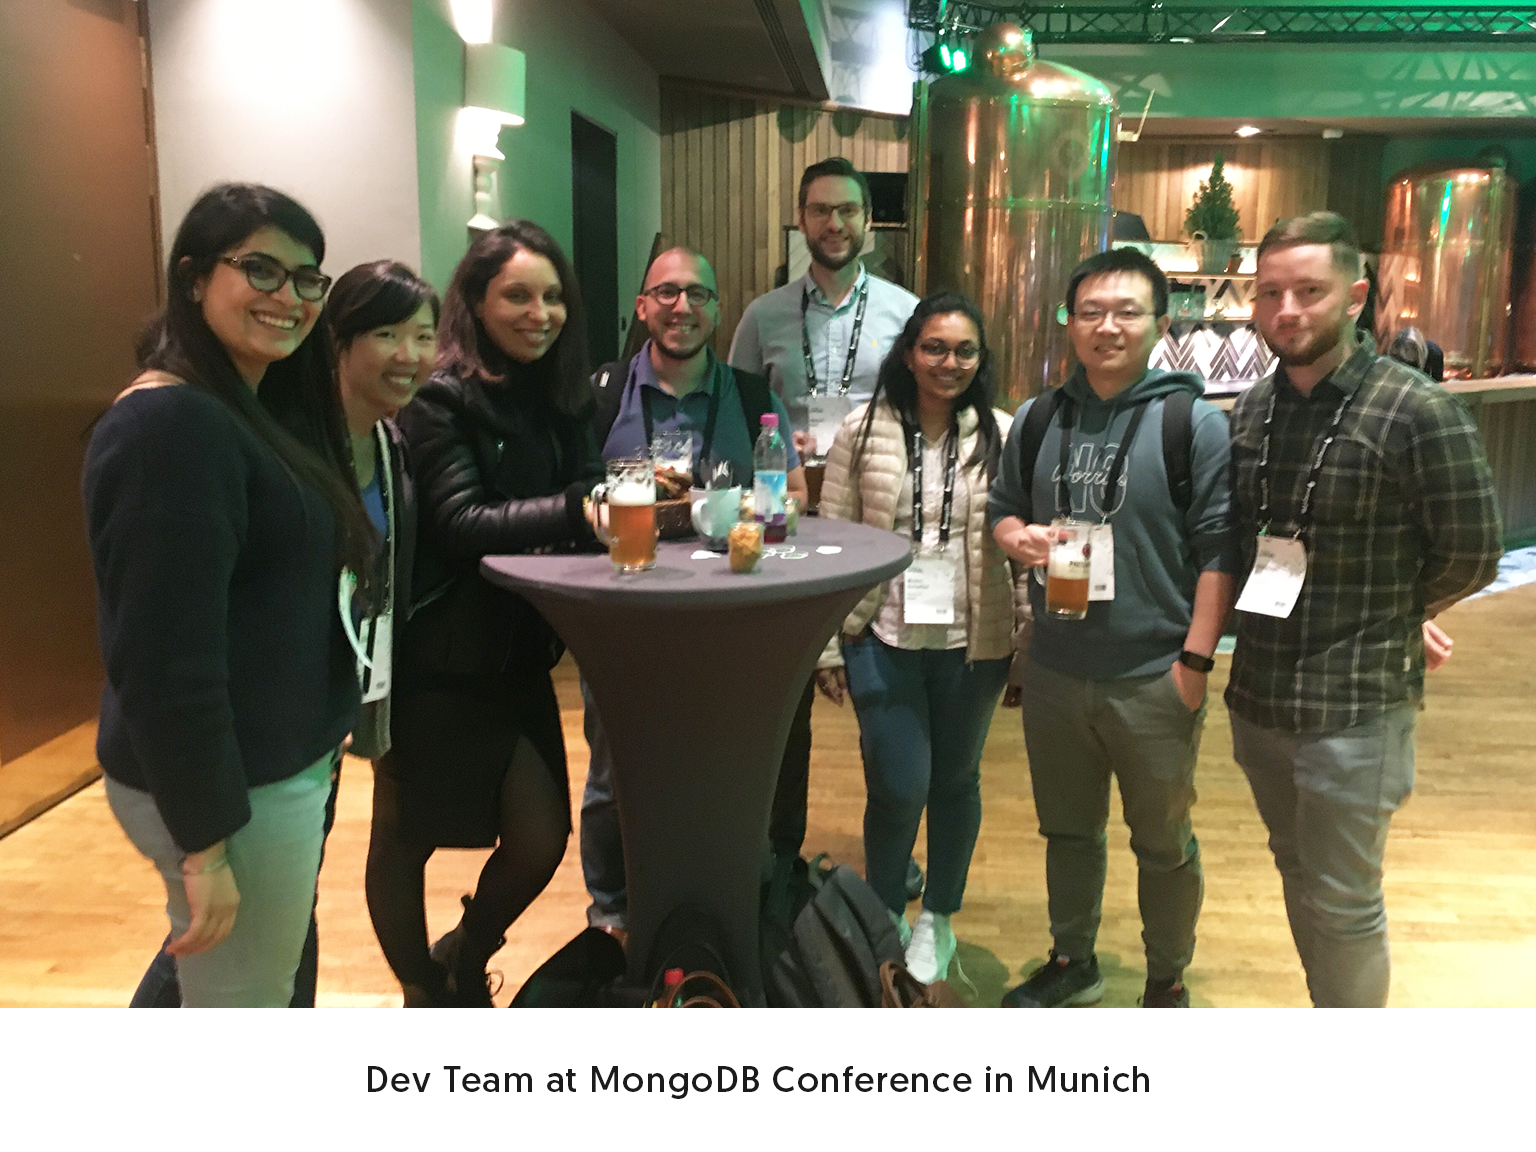 Dev Team at MongoDB Conference in Munich